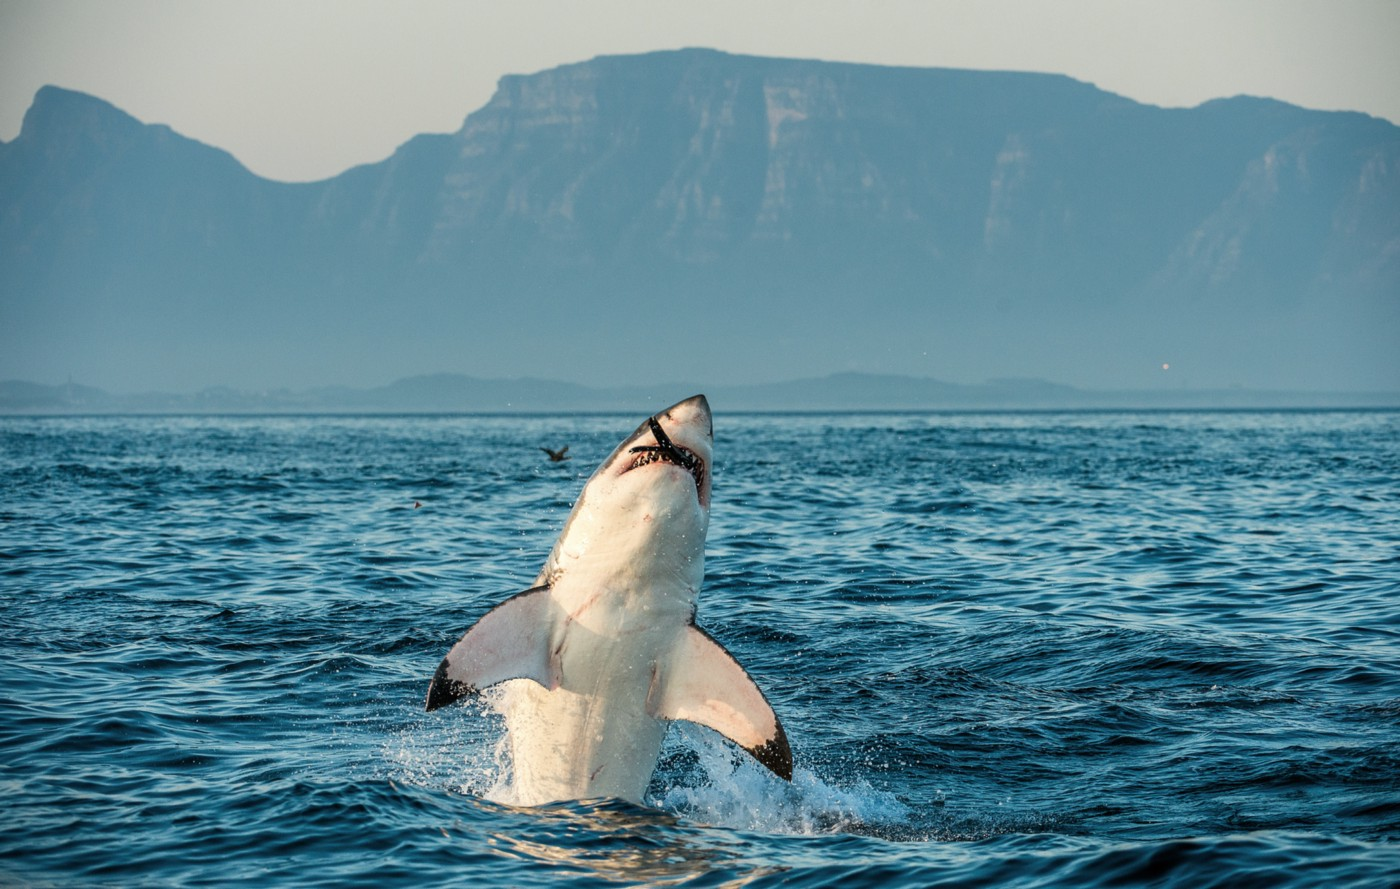 Shark leaping out of the water in Gansbaai South Africa.